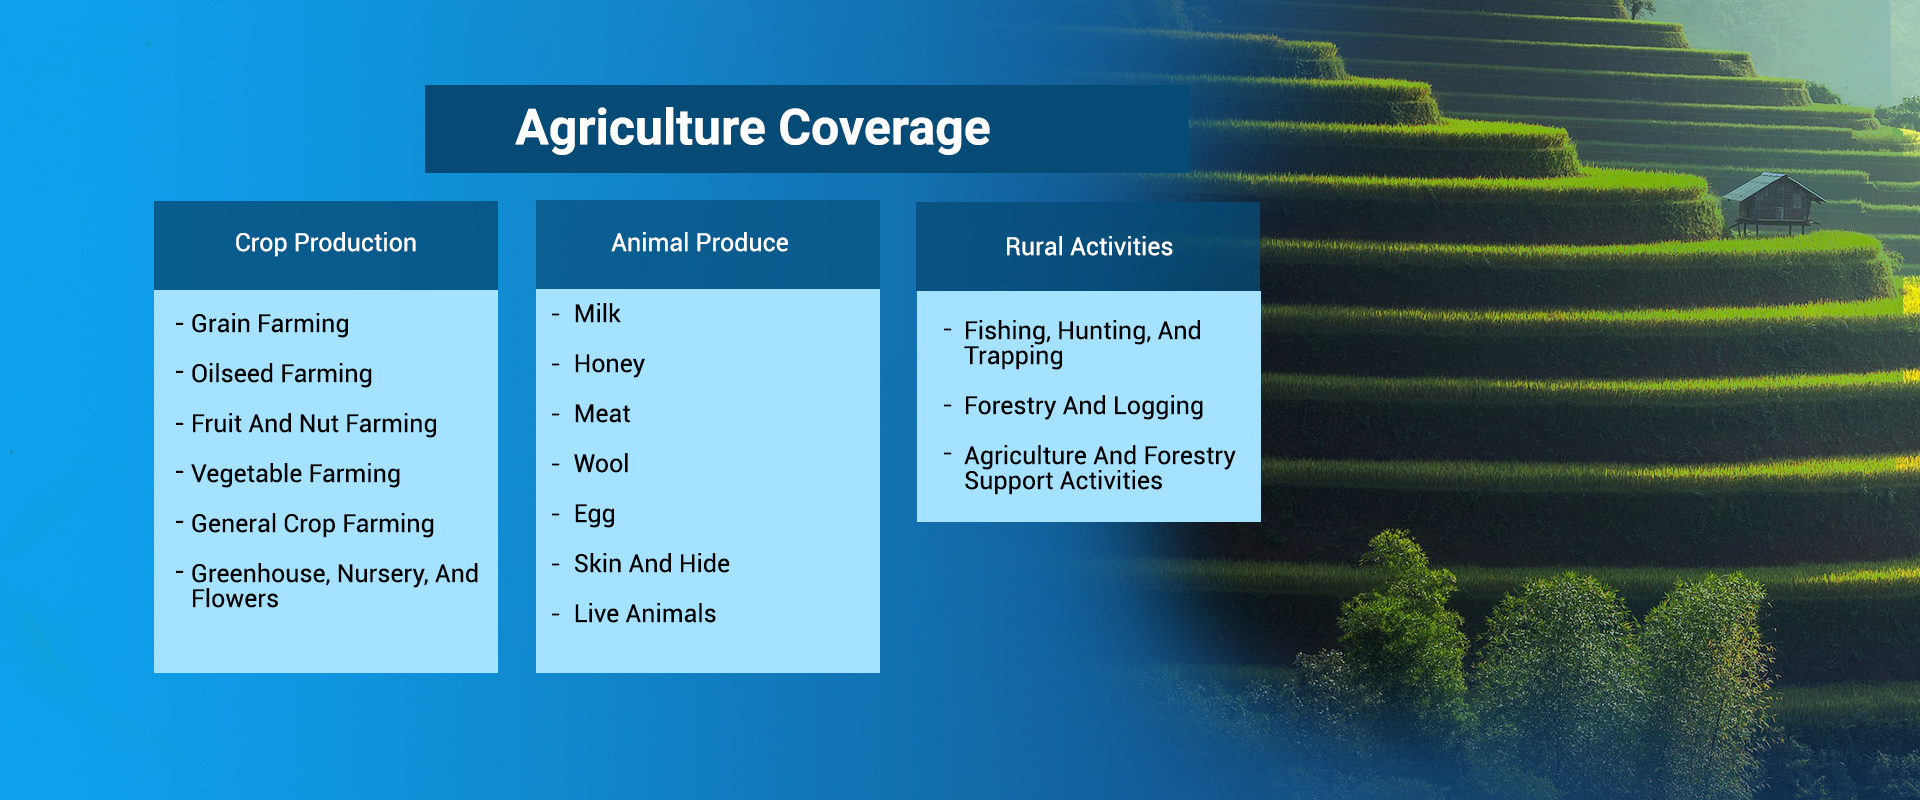 Agriculture Coverage